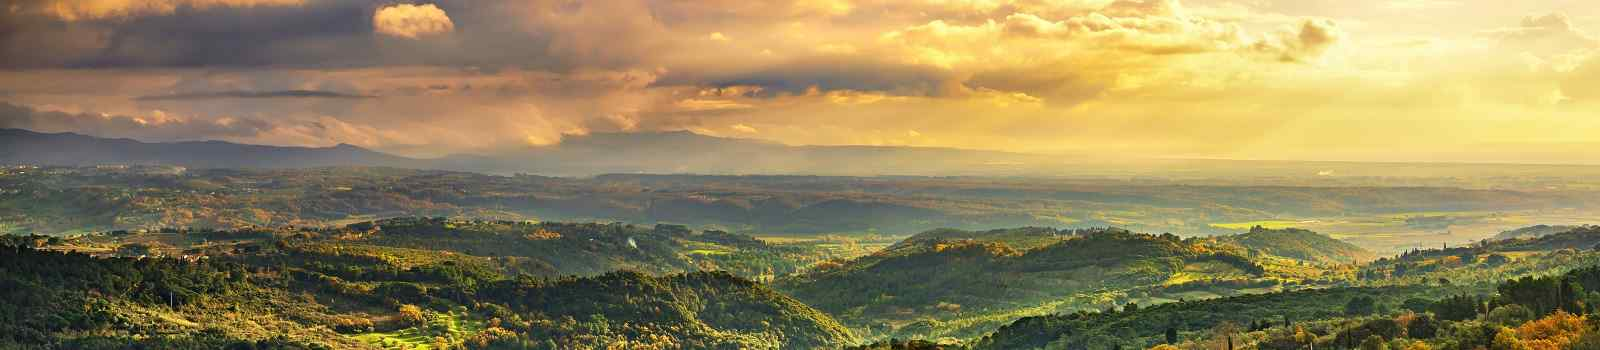 Maremma sunset panorama  Countryside  hills and sea on horizon  Val di Cecina Livorno coast  Tuscany  Italy Europe shutterstock 539423839